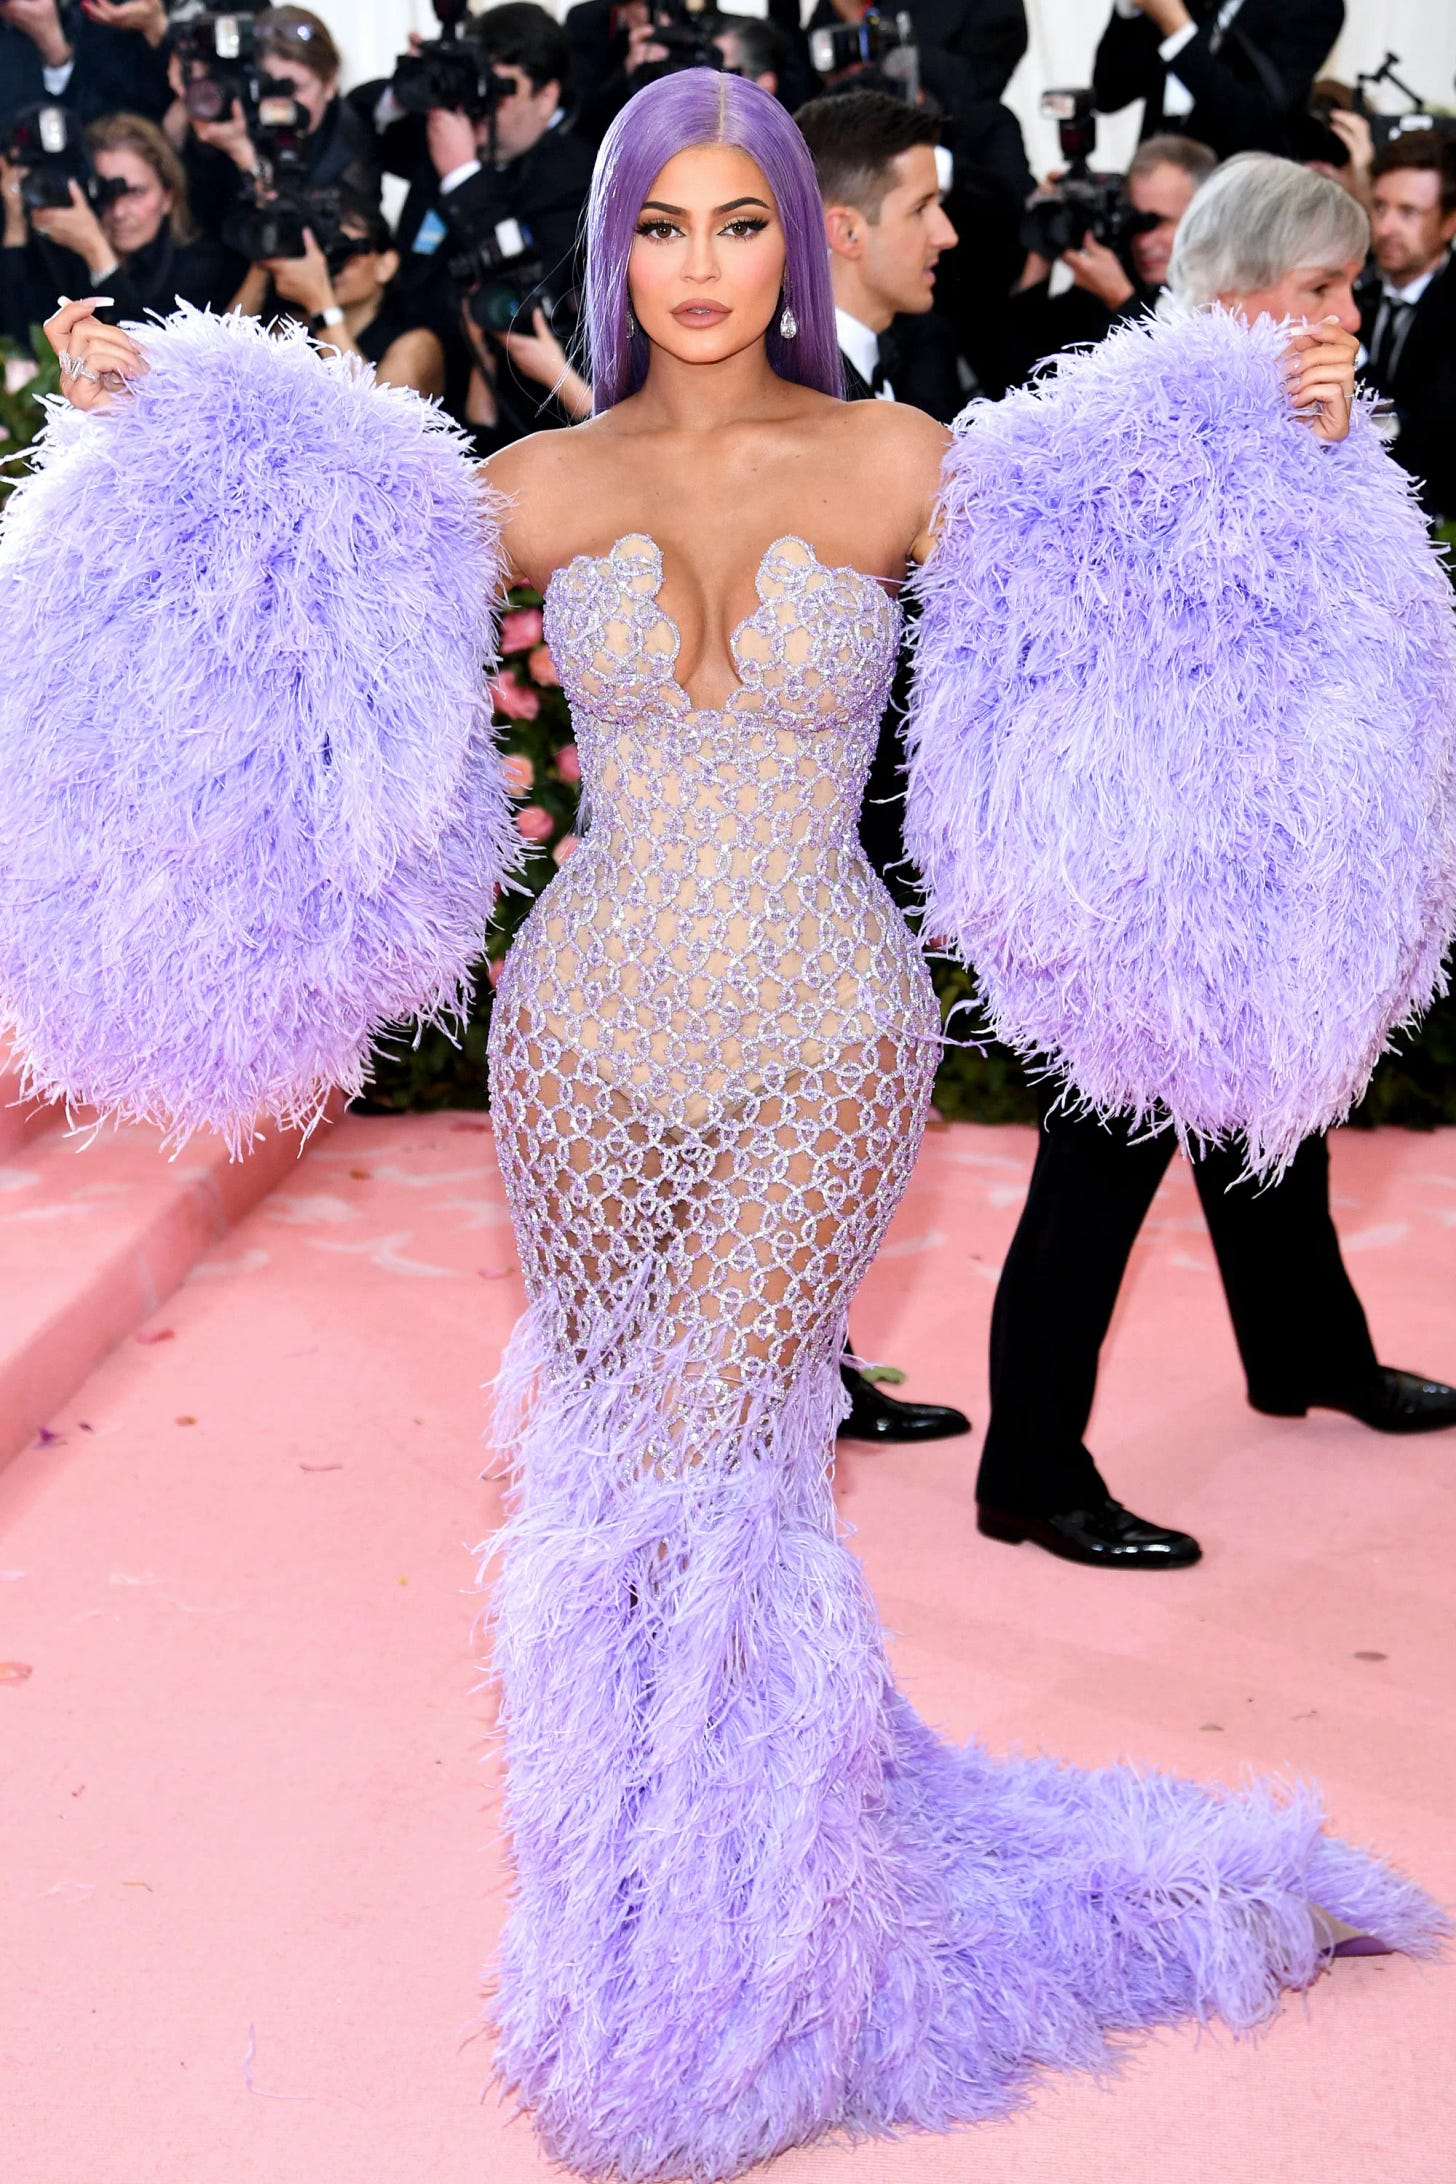 Kylie Jenner Hair-To-Toe Lavender Fashion At Met Gala